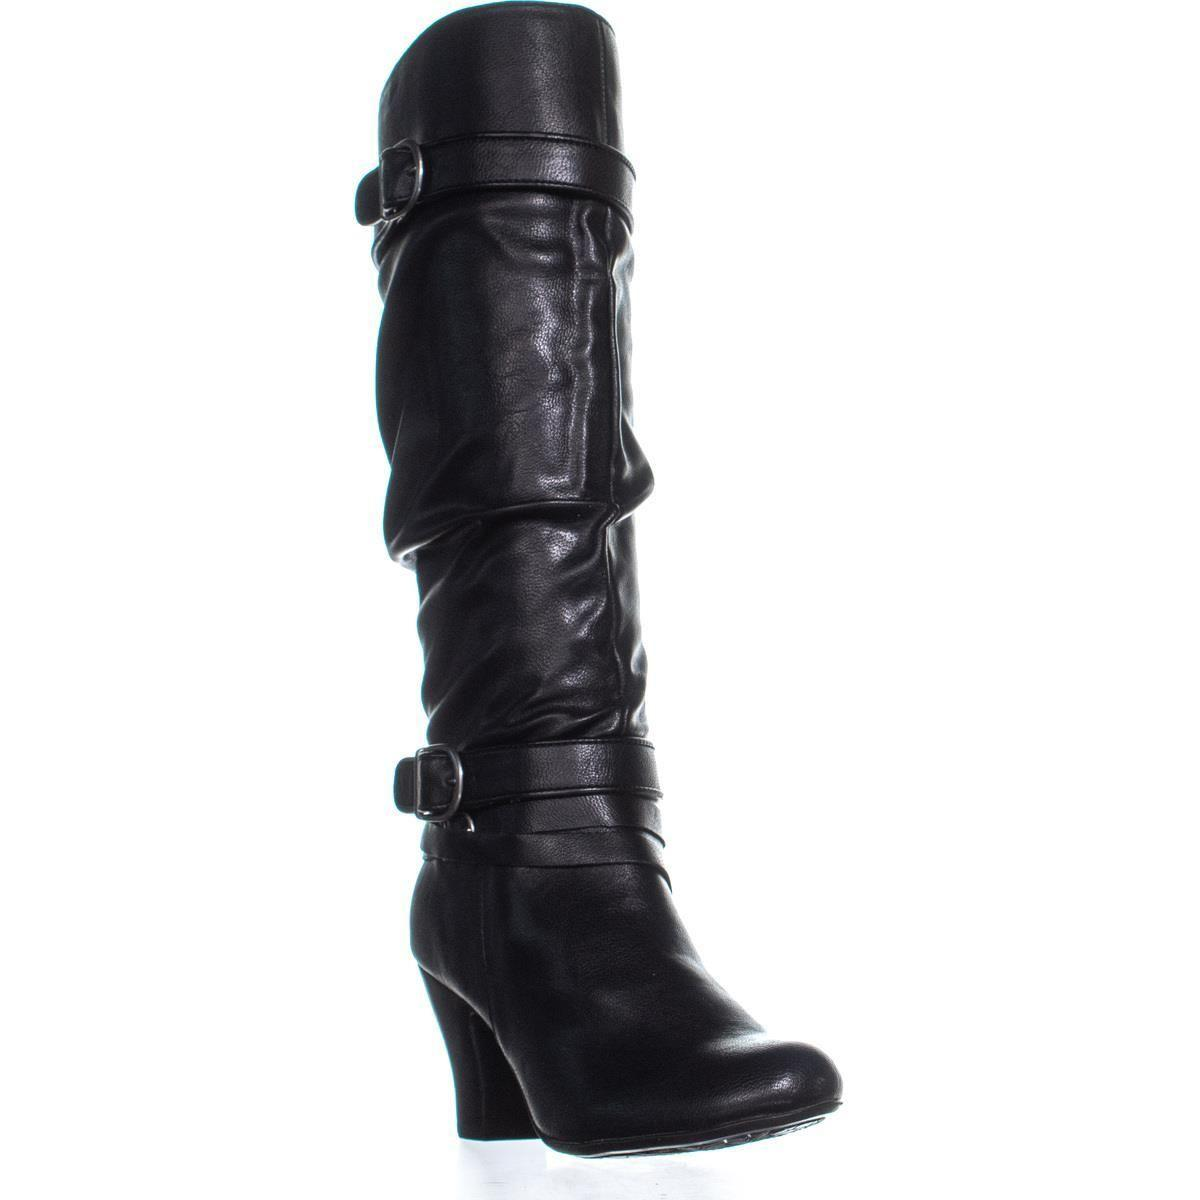 a23c9dd805e5 Lyst - Hush Puppies Lonna Zippered Knee-high Boots in Black - Save 13%